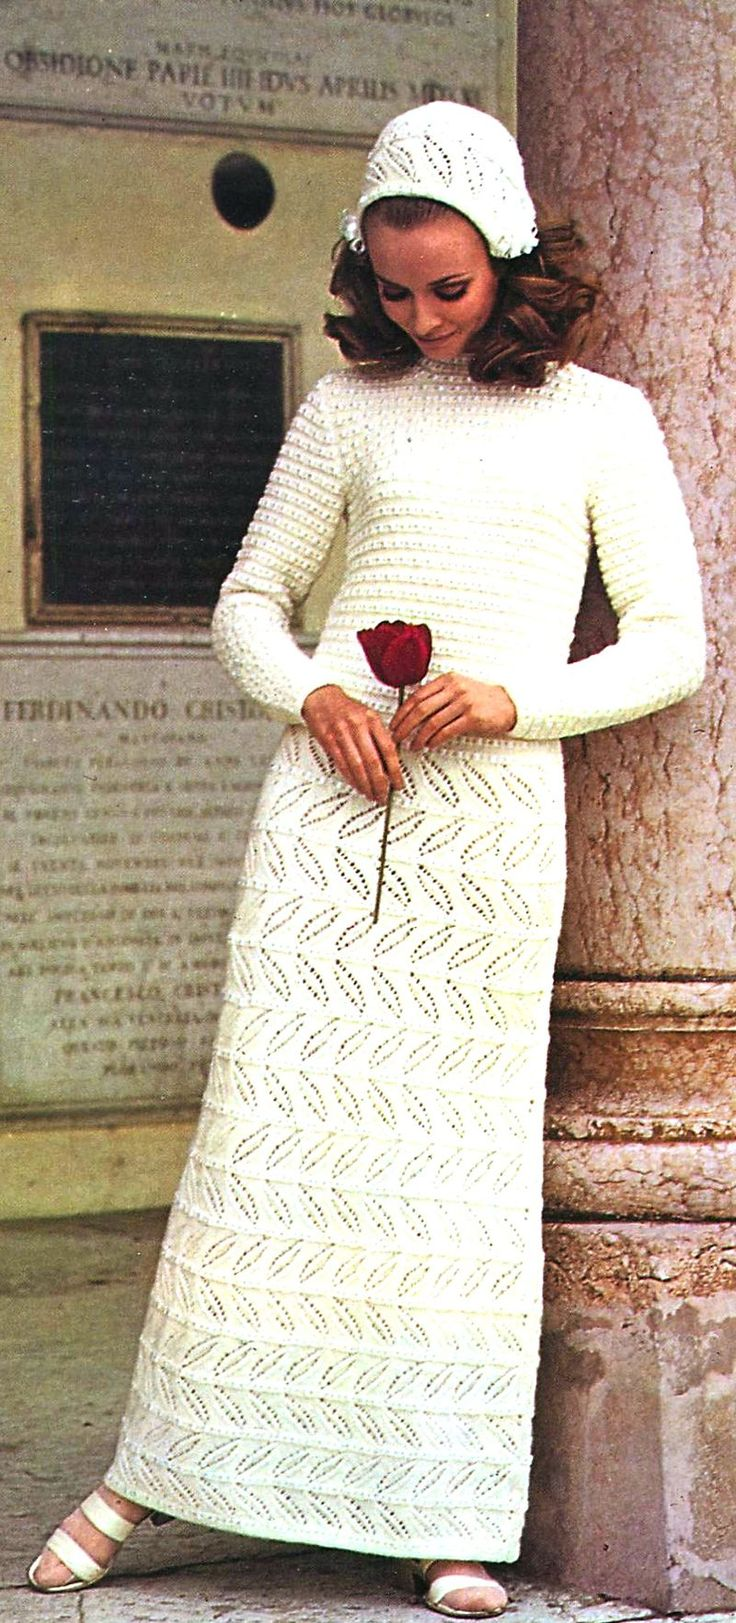 Wedding Knitting Patterns : 17 Best images about Vintage Wedding knitted items on Pinterest Vintage, Vi...